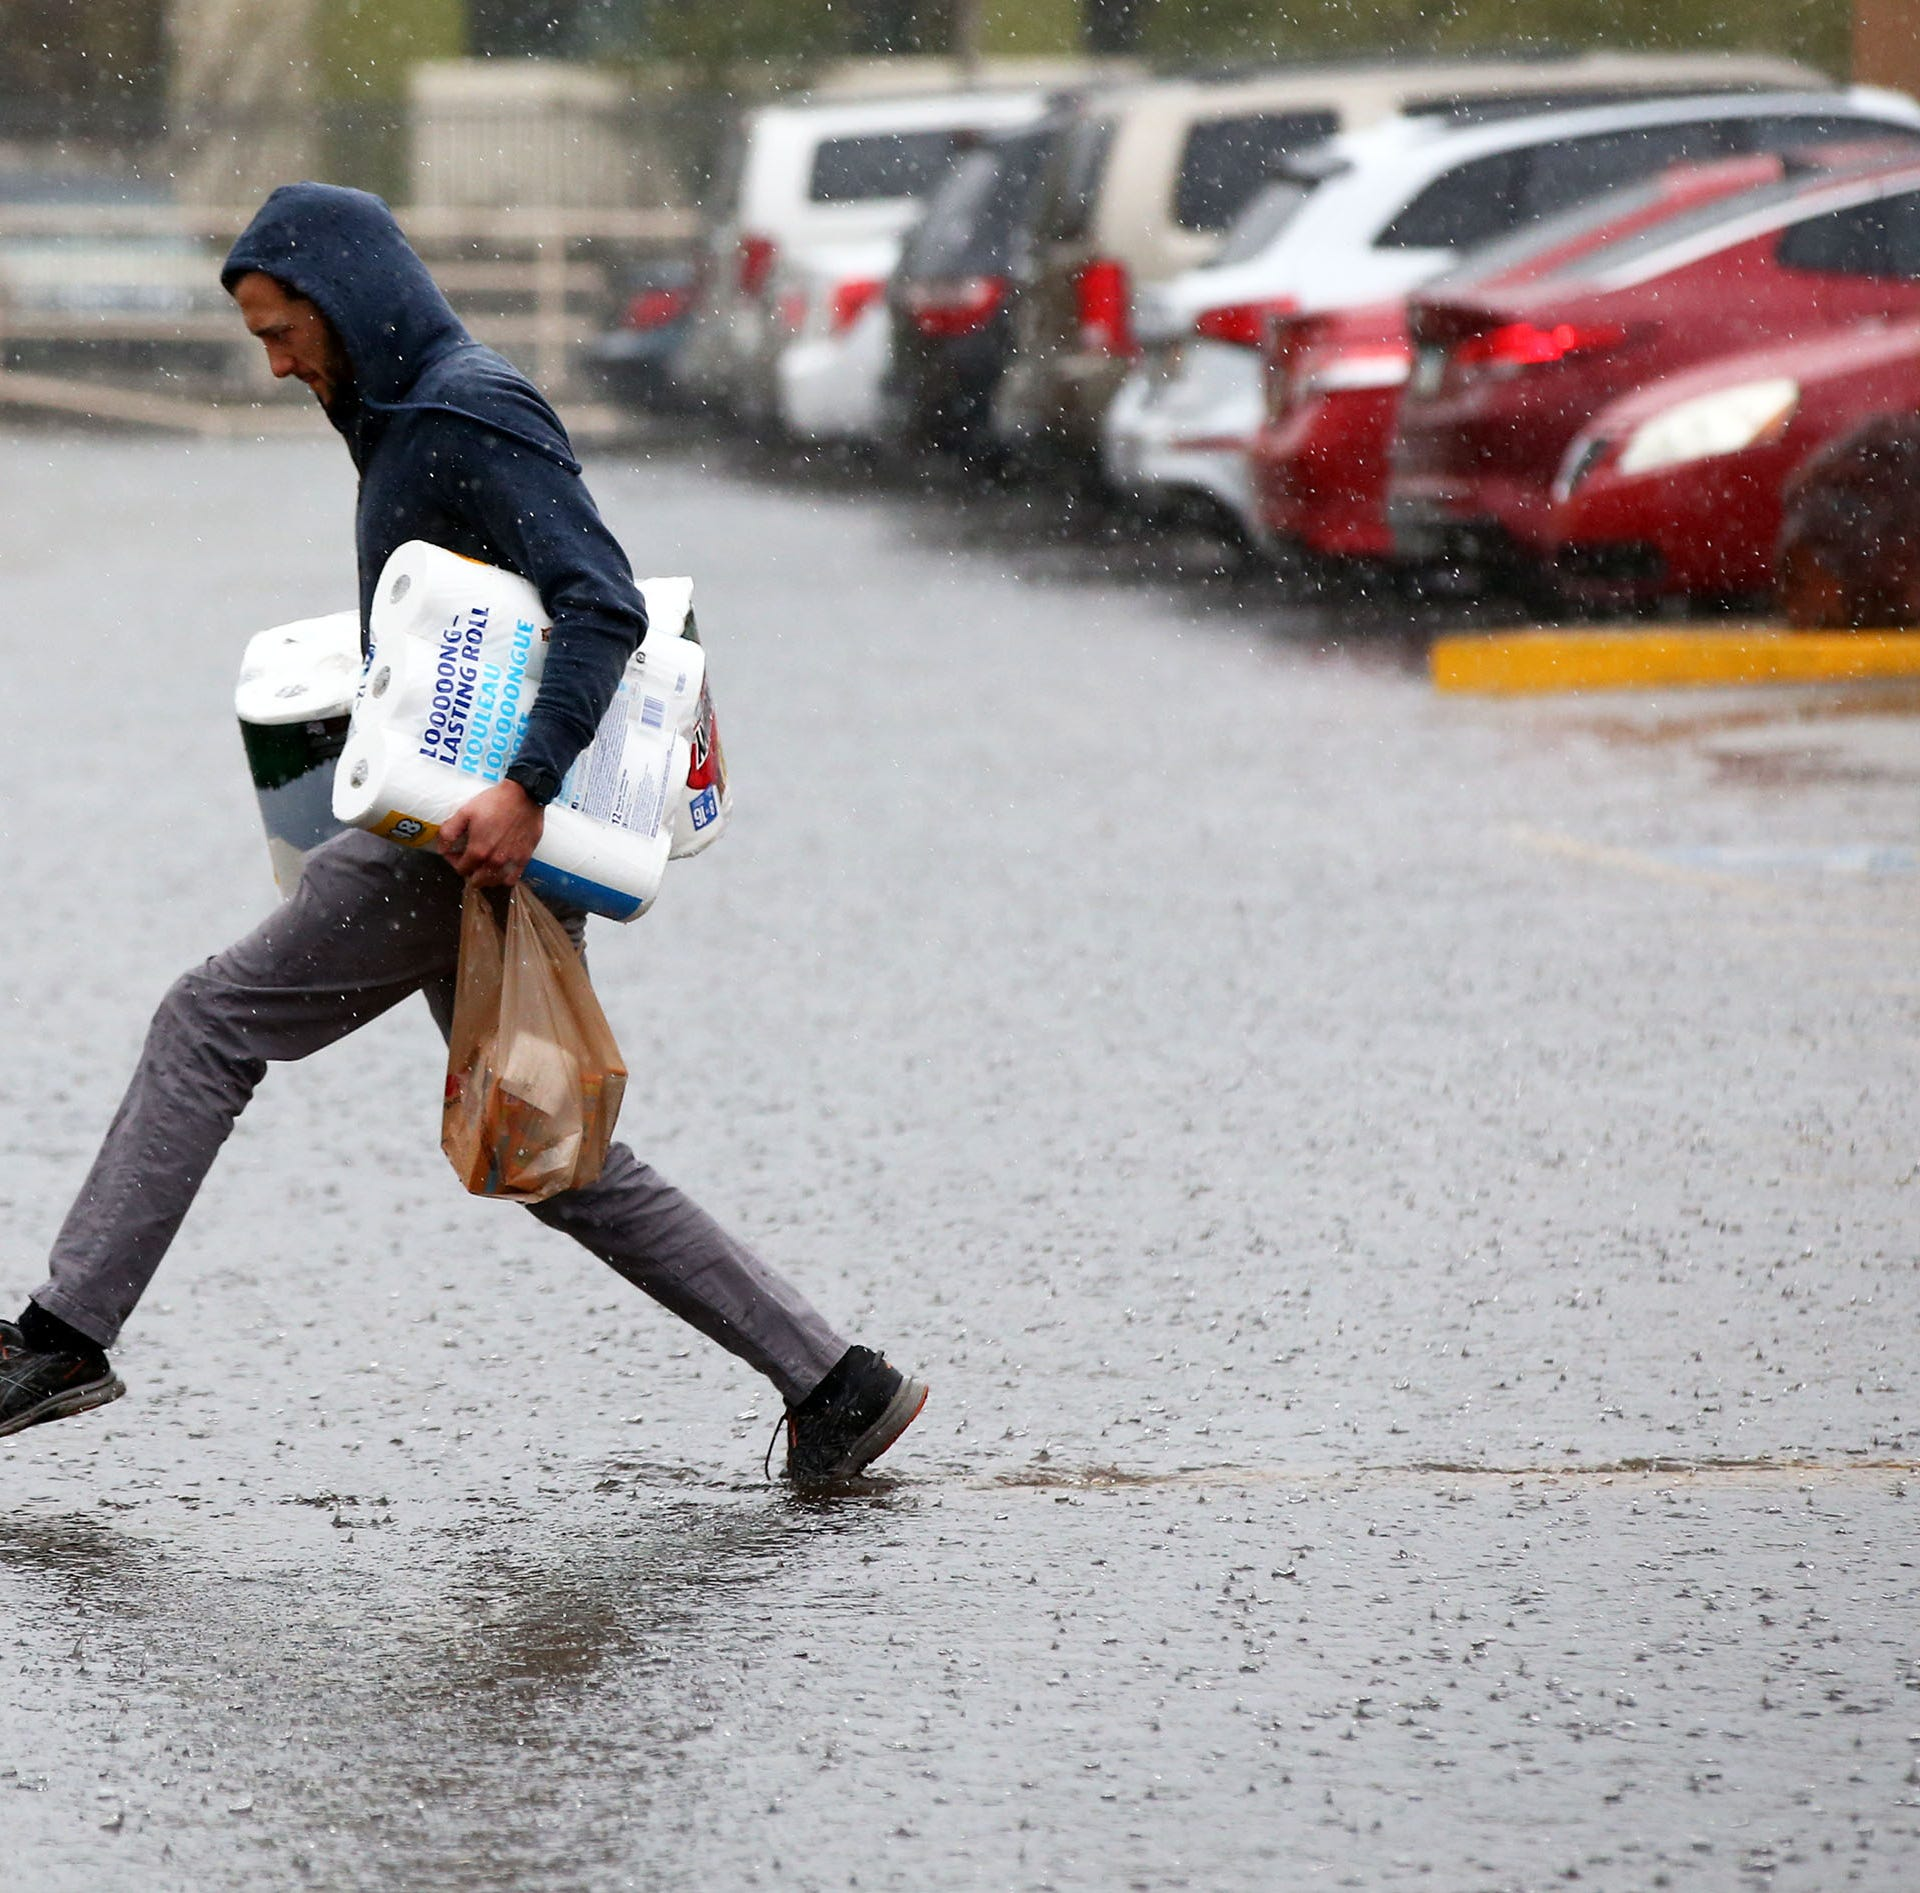 Nearly a quarter-inch of rain recorded at Phoenix Sky Harbor Airport